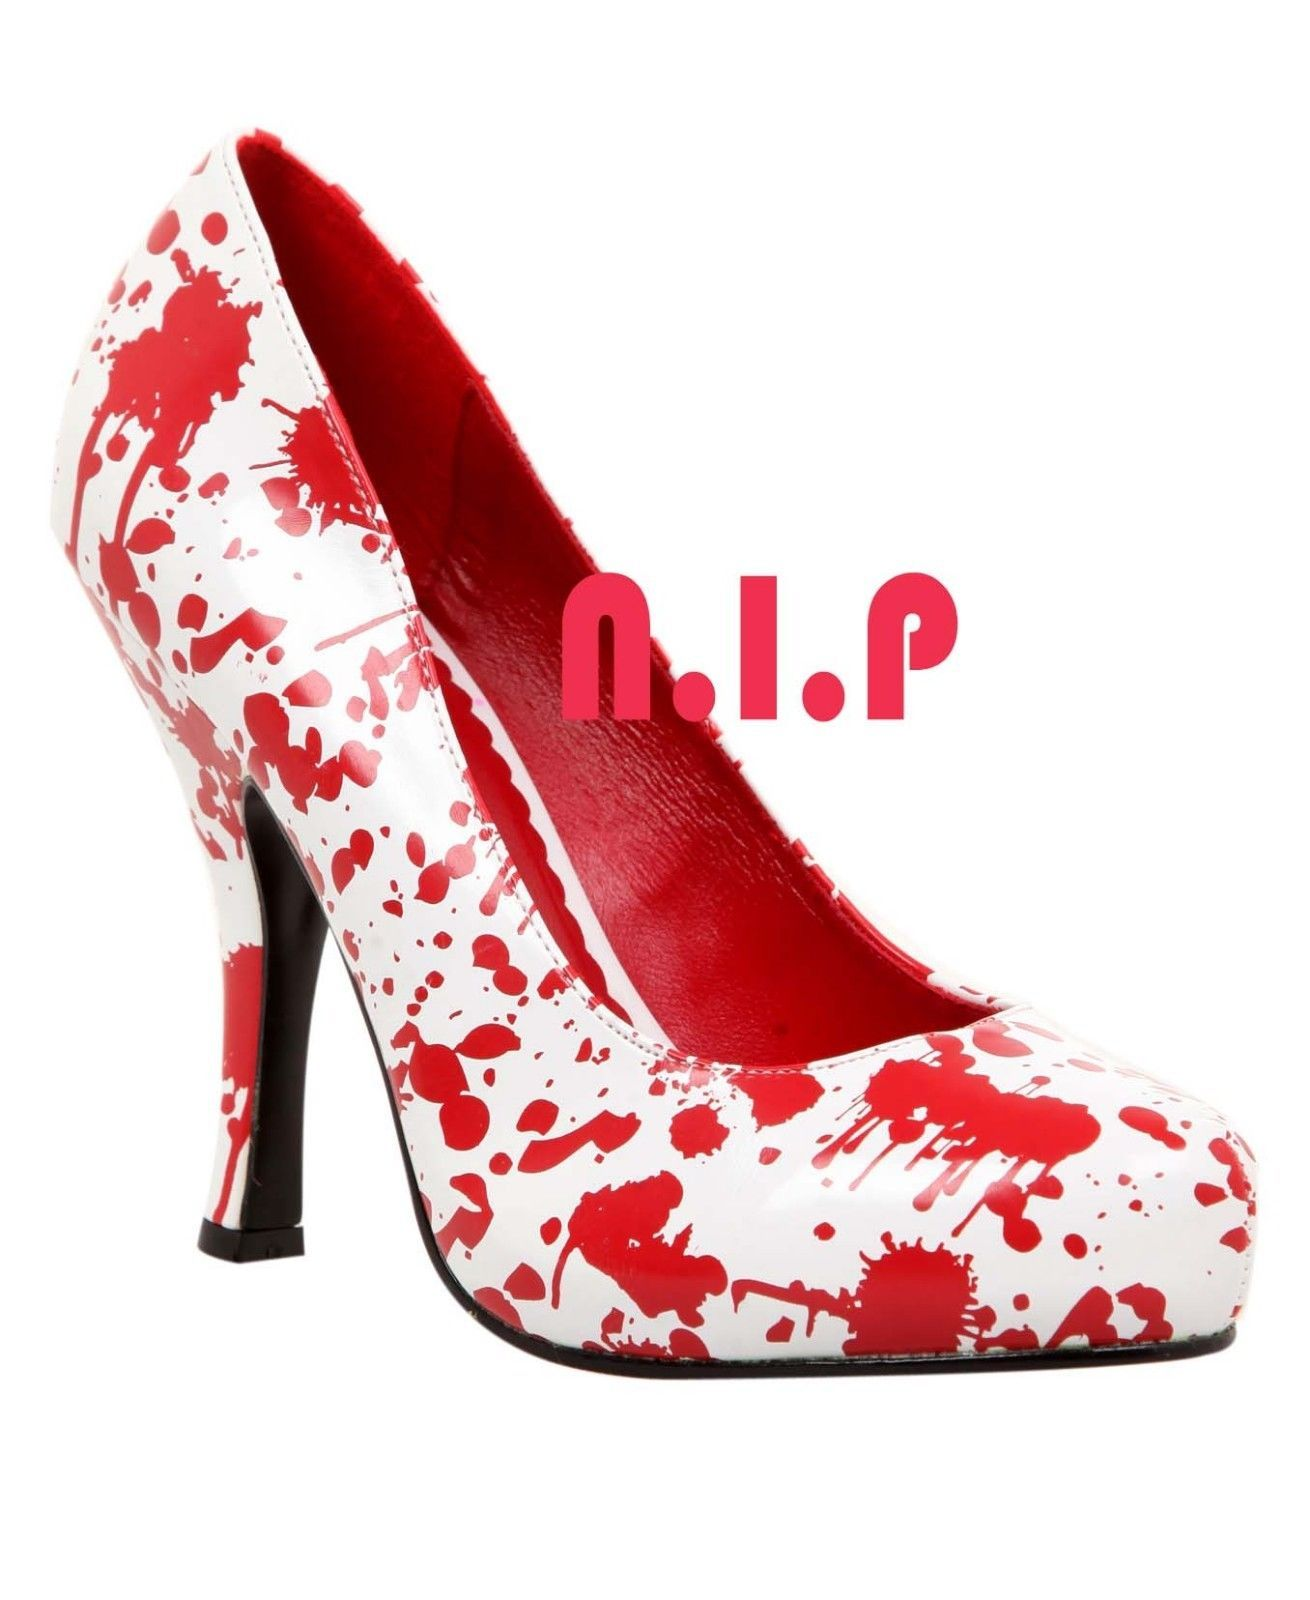 FUNTASMA White Blood Splatter Horror Hot Topic Punk Goth Pumps High Heels Shoes